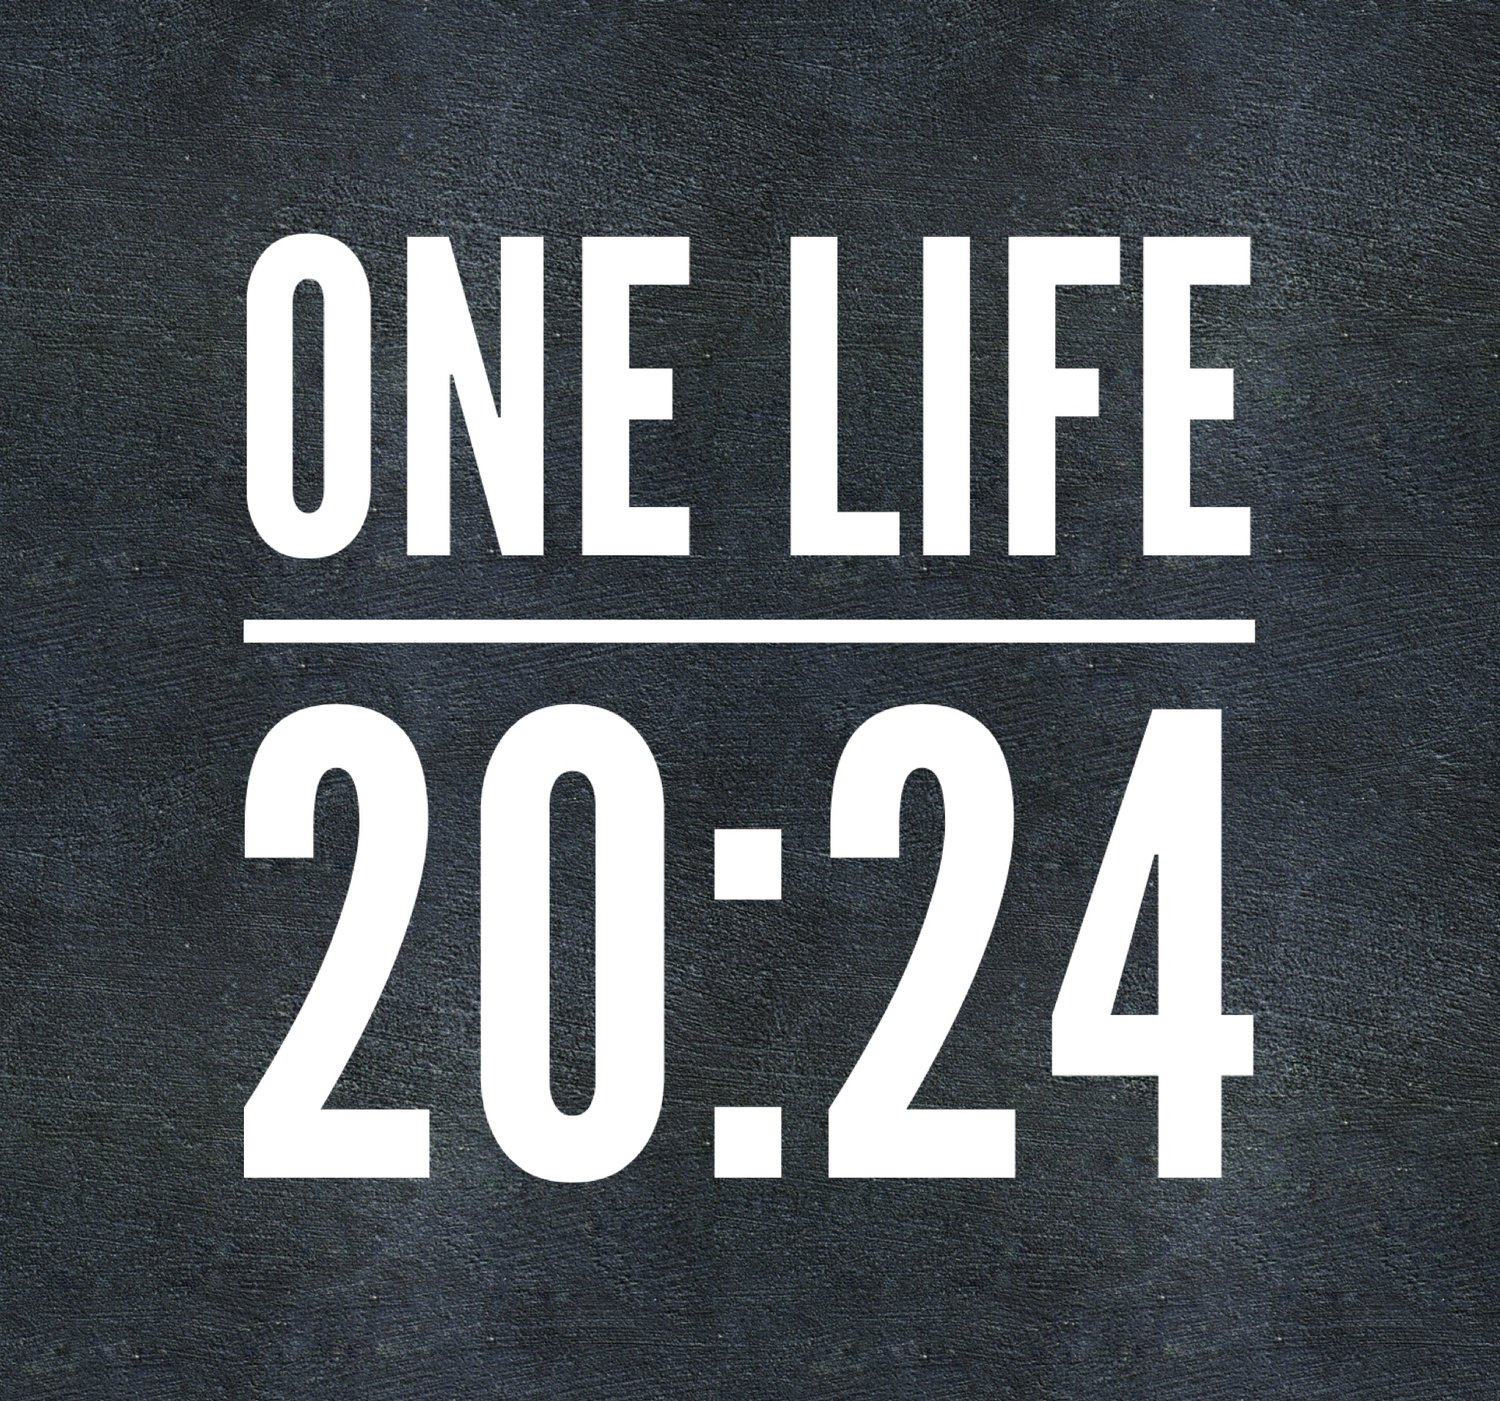 ONELIFE 20:24